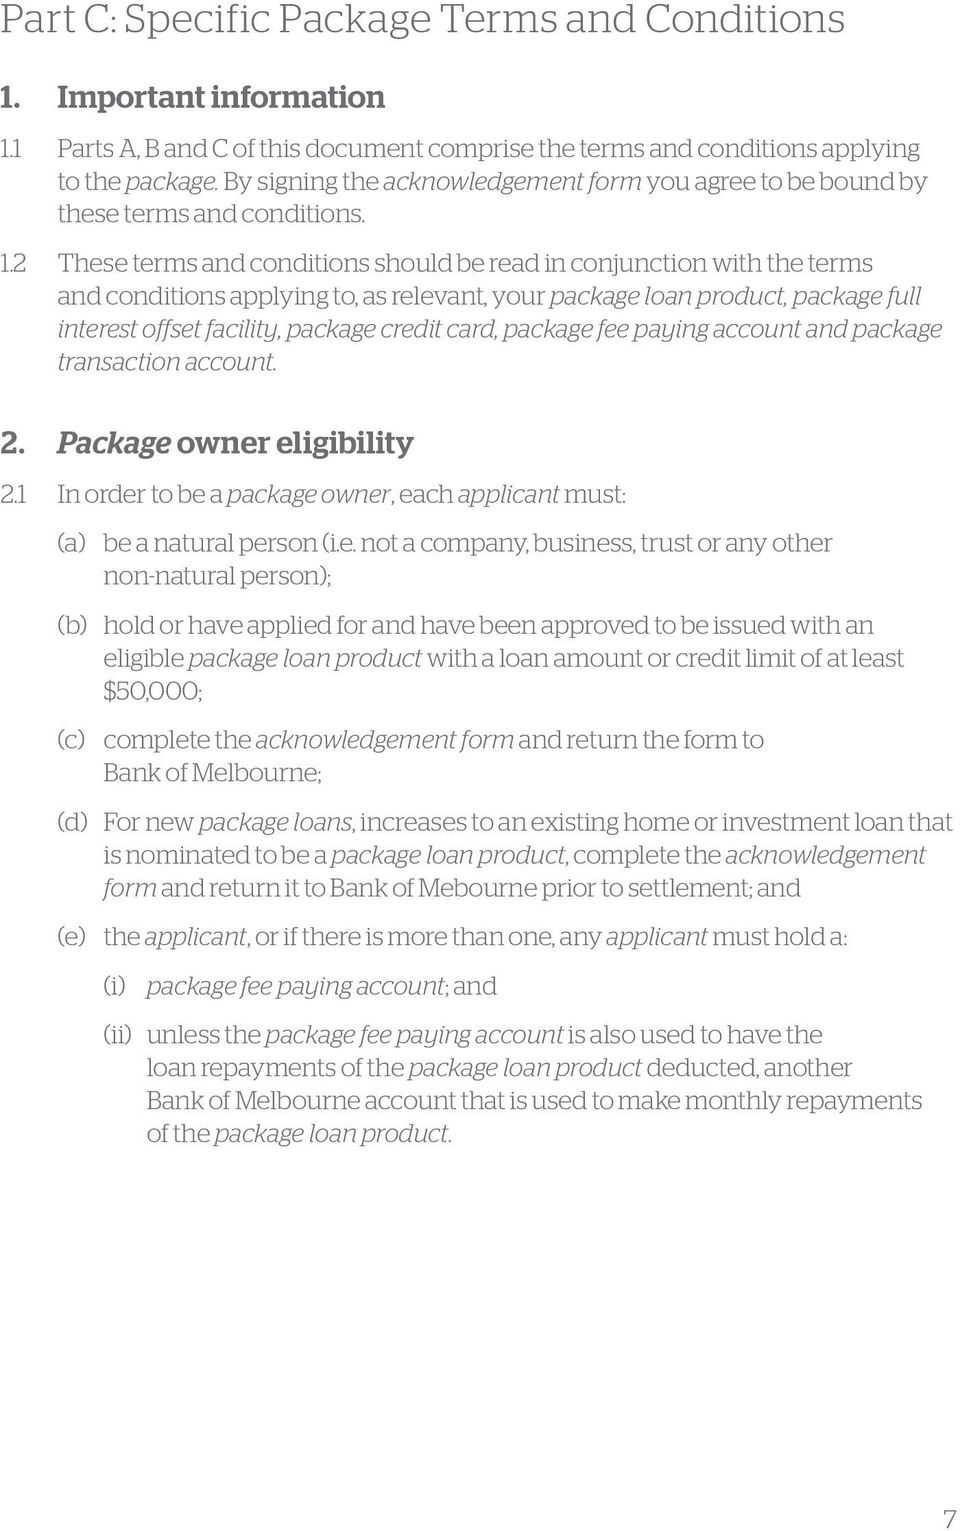 2 These terms and conditions should be read in conjunction with the terms and conditions applying to, as relevant, your package loan product, package full interest offset facility, package credit